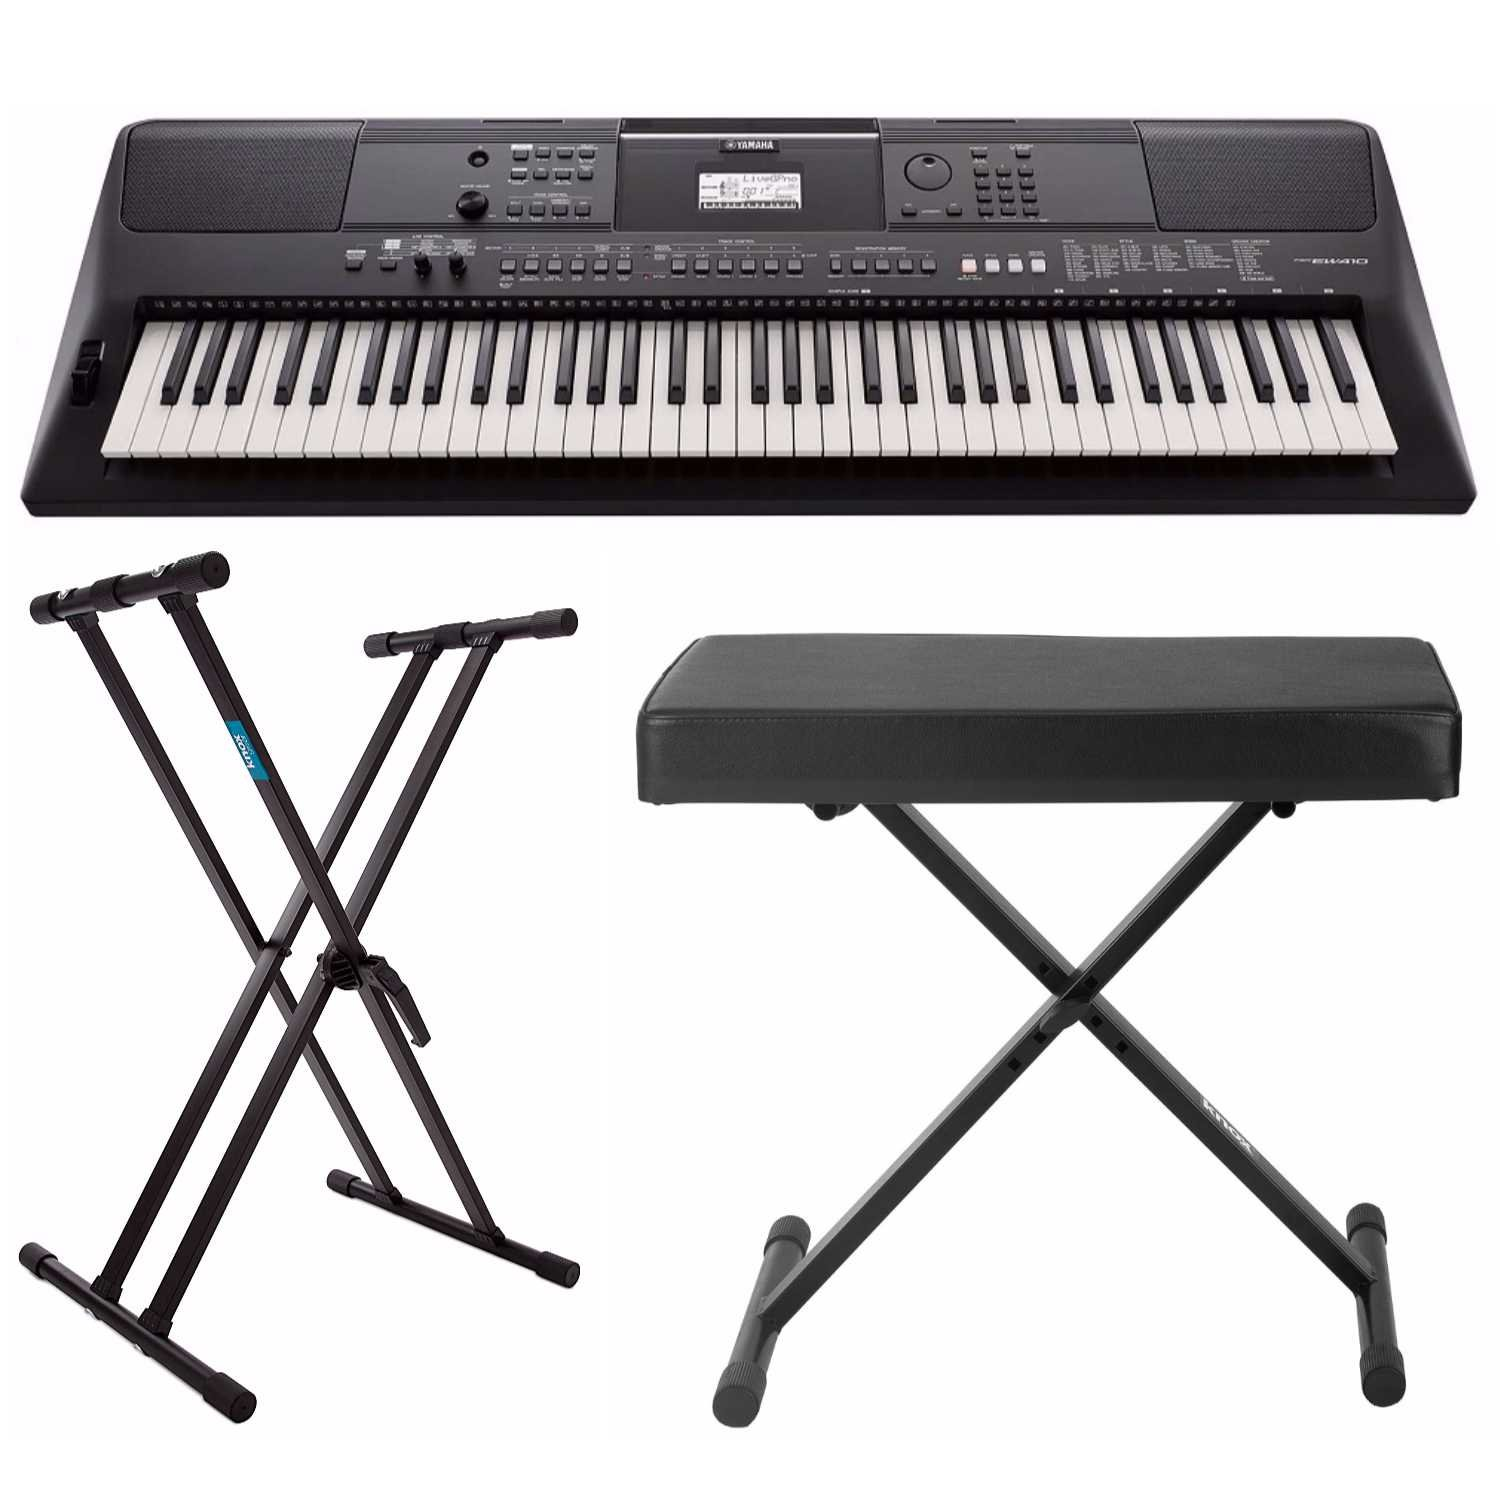 Yamaha PSREW410 76-key Portable Keyboard with Power Adapter, Knox Double X Keyboard Stand & Bench